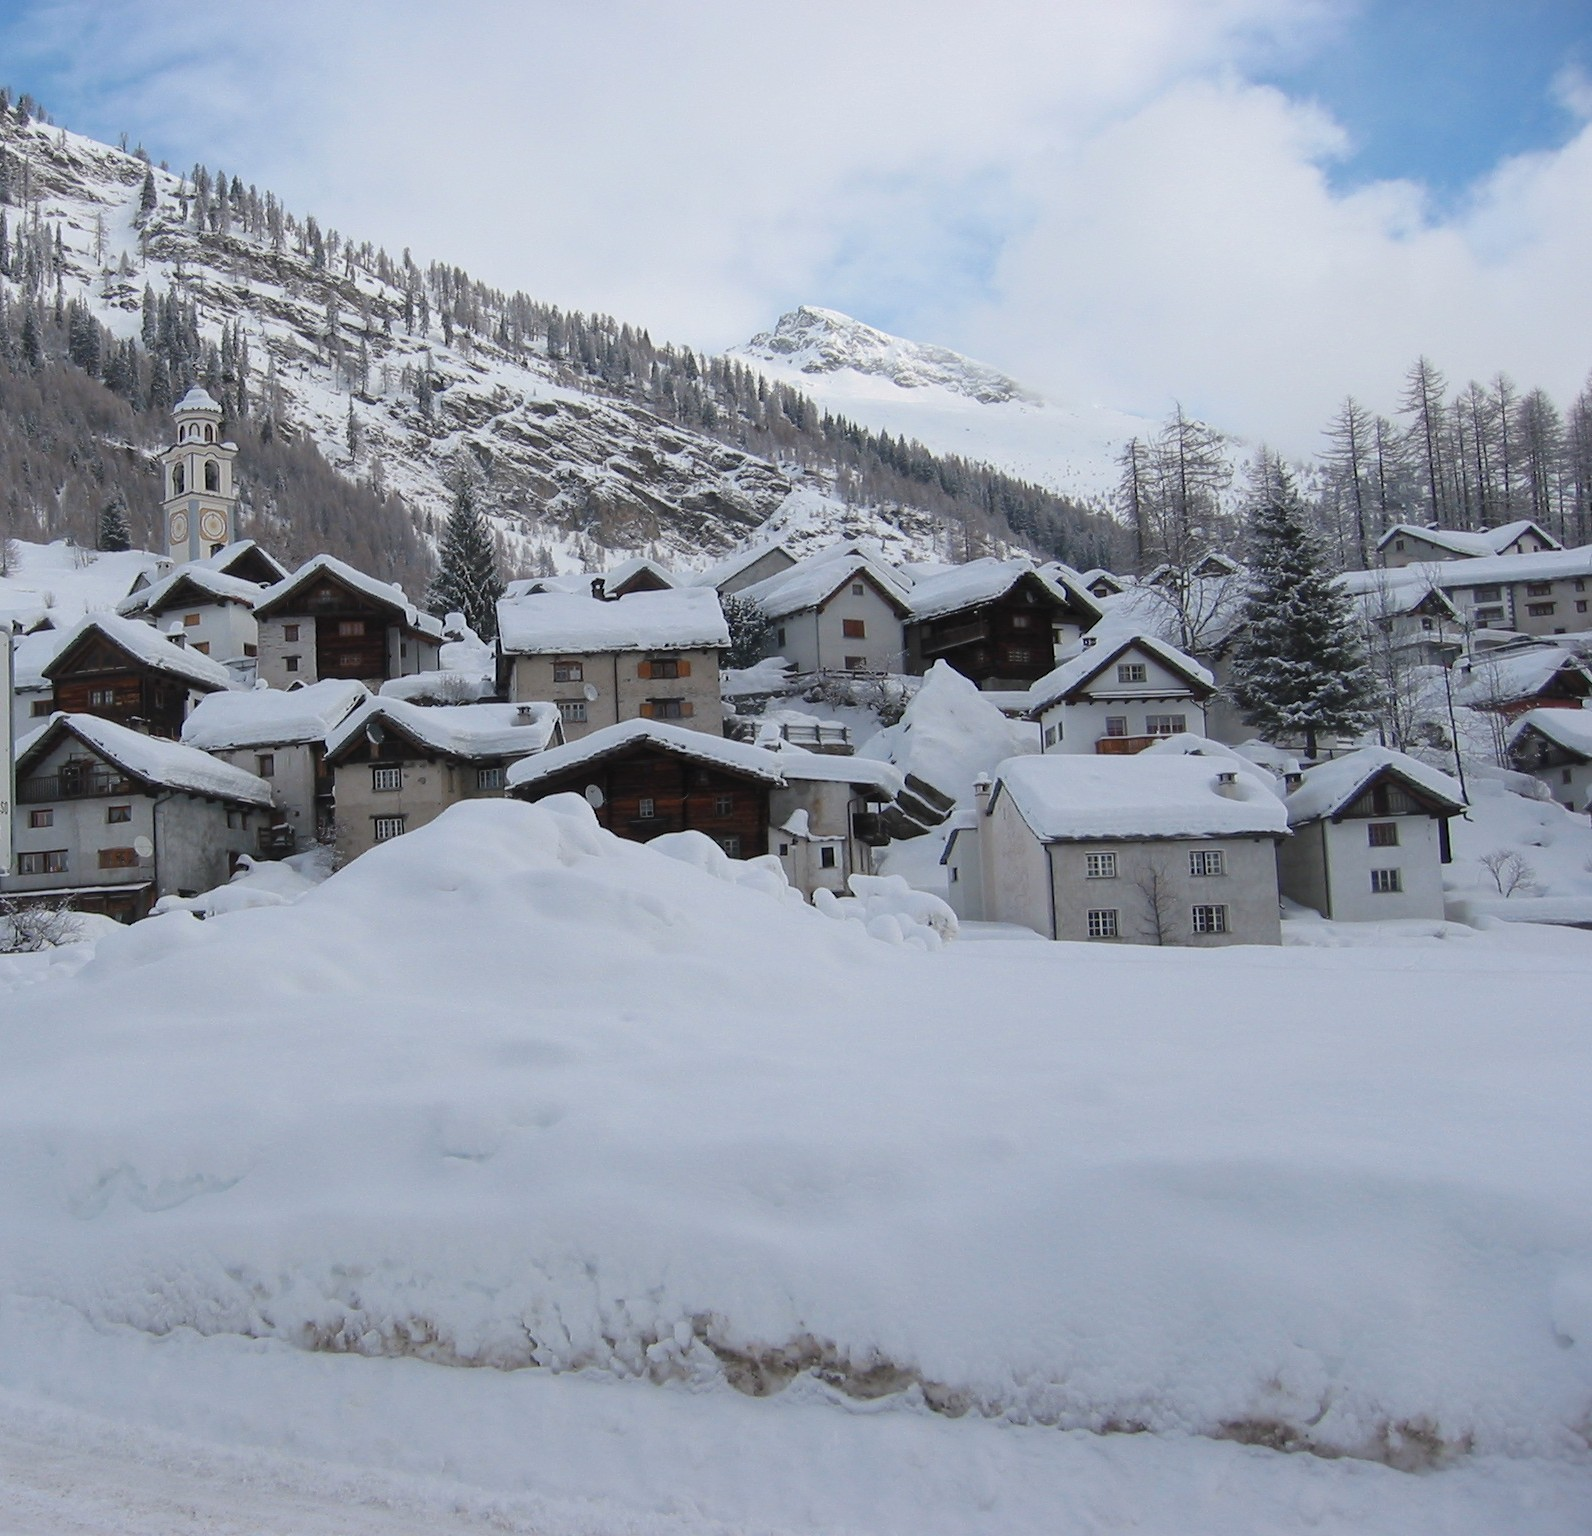 Bosco Gurin is a small village perfect for skiing.